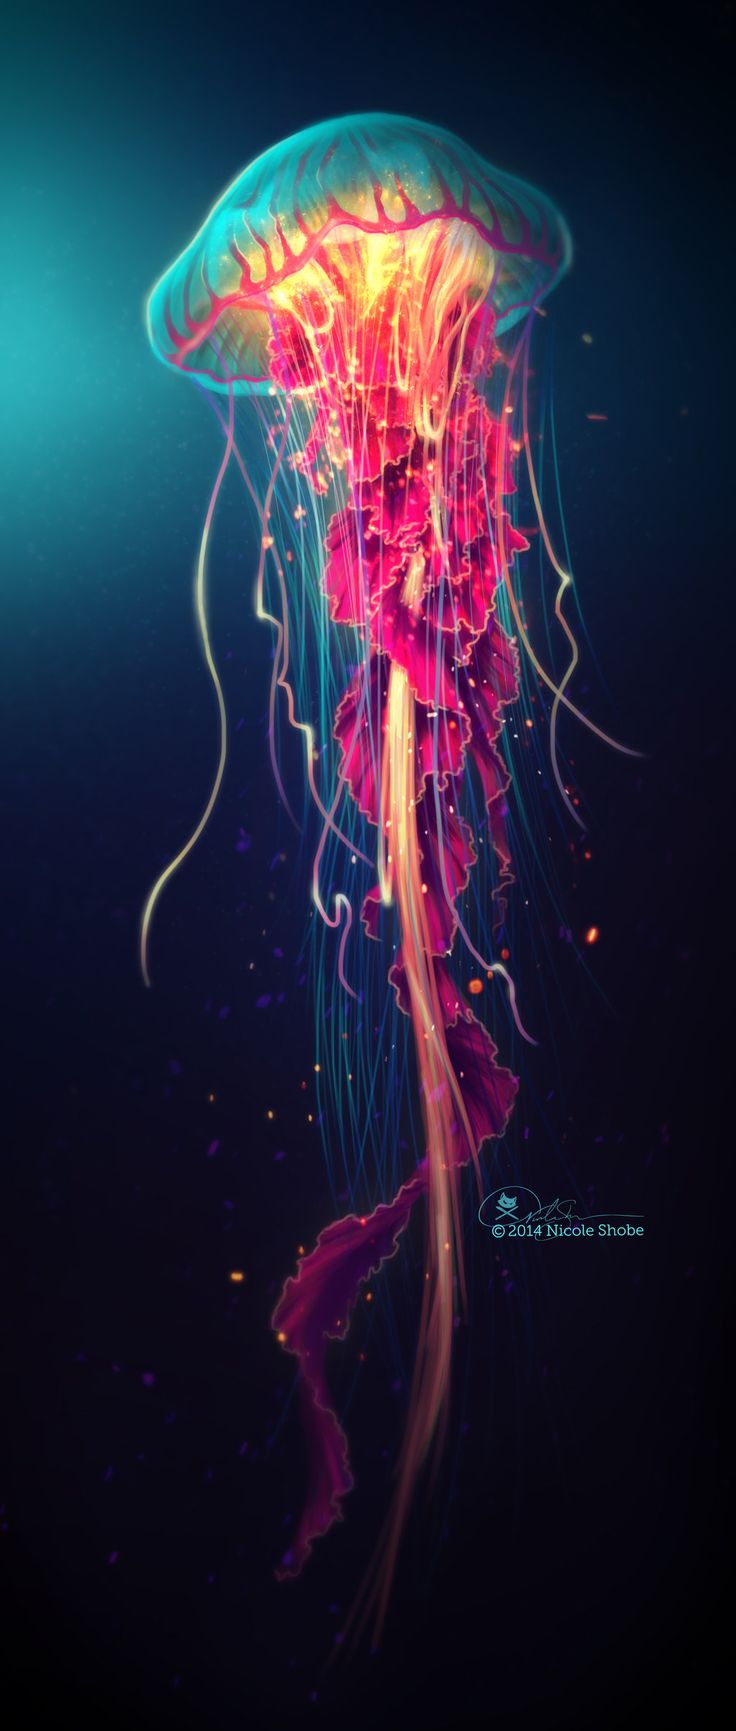 Jellyfish by shobey1kanoby.deviantart.com on @deviantART